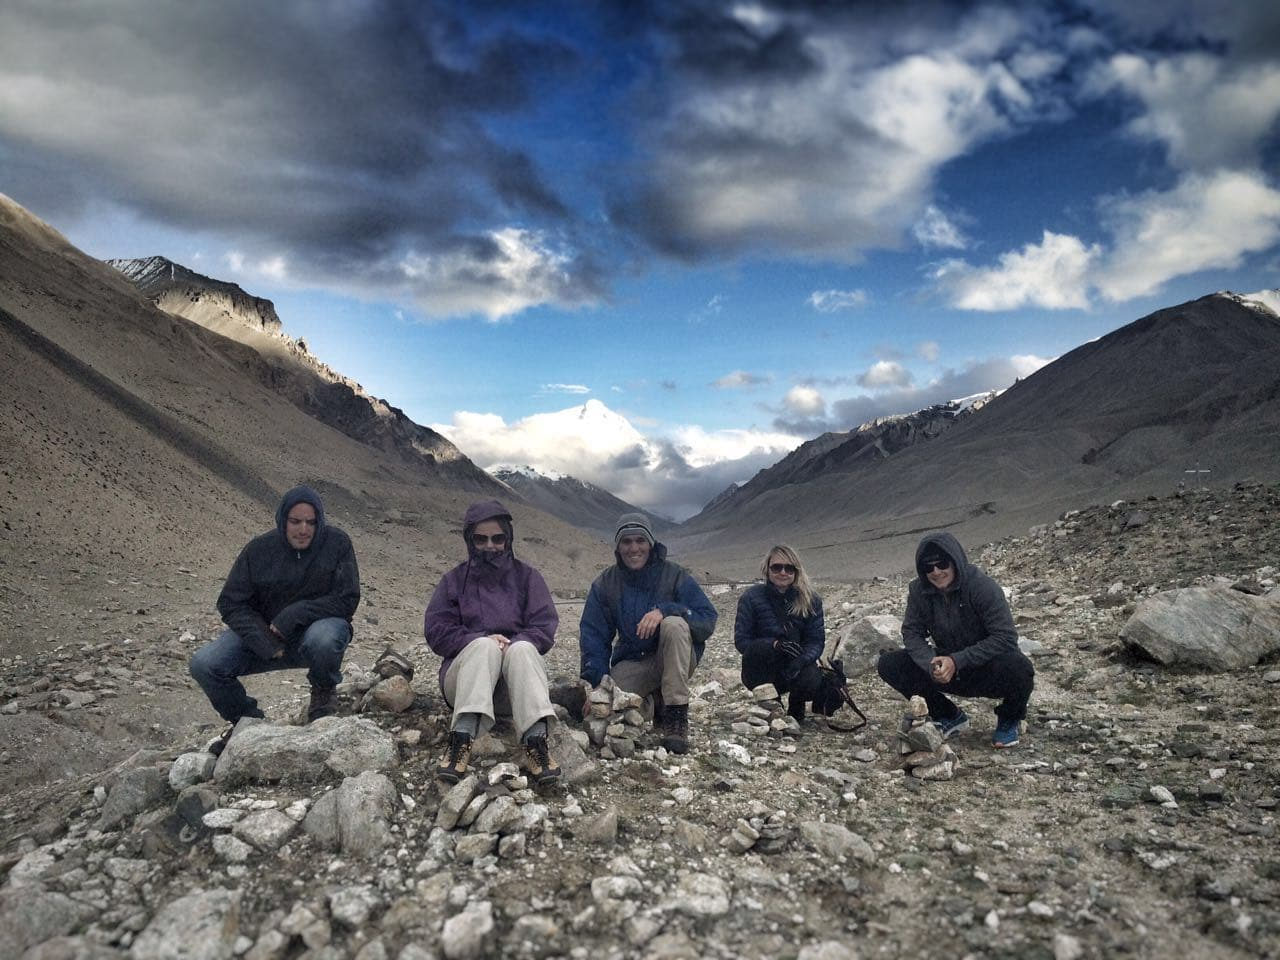 Group in the mountains with the Everest on the background